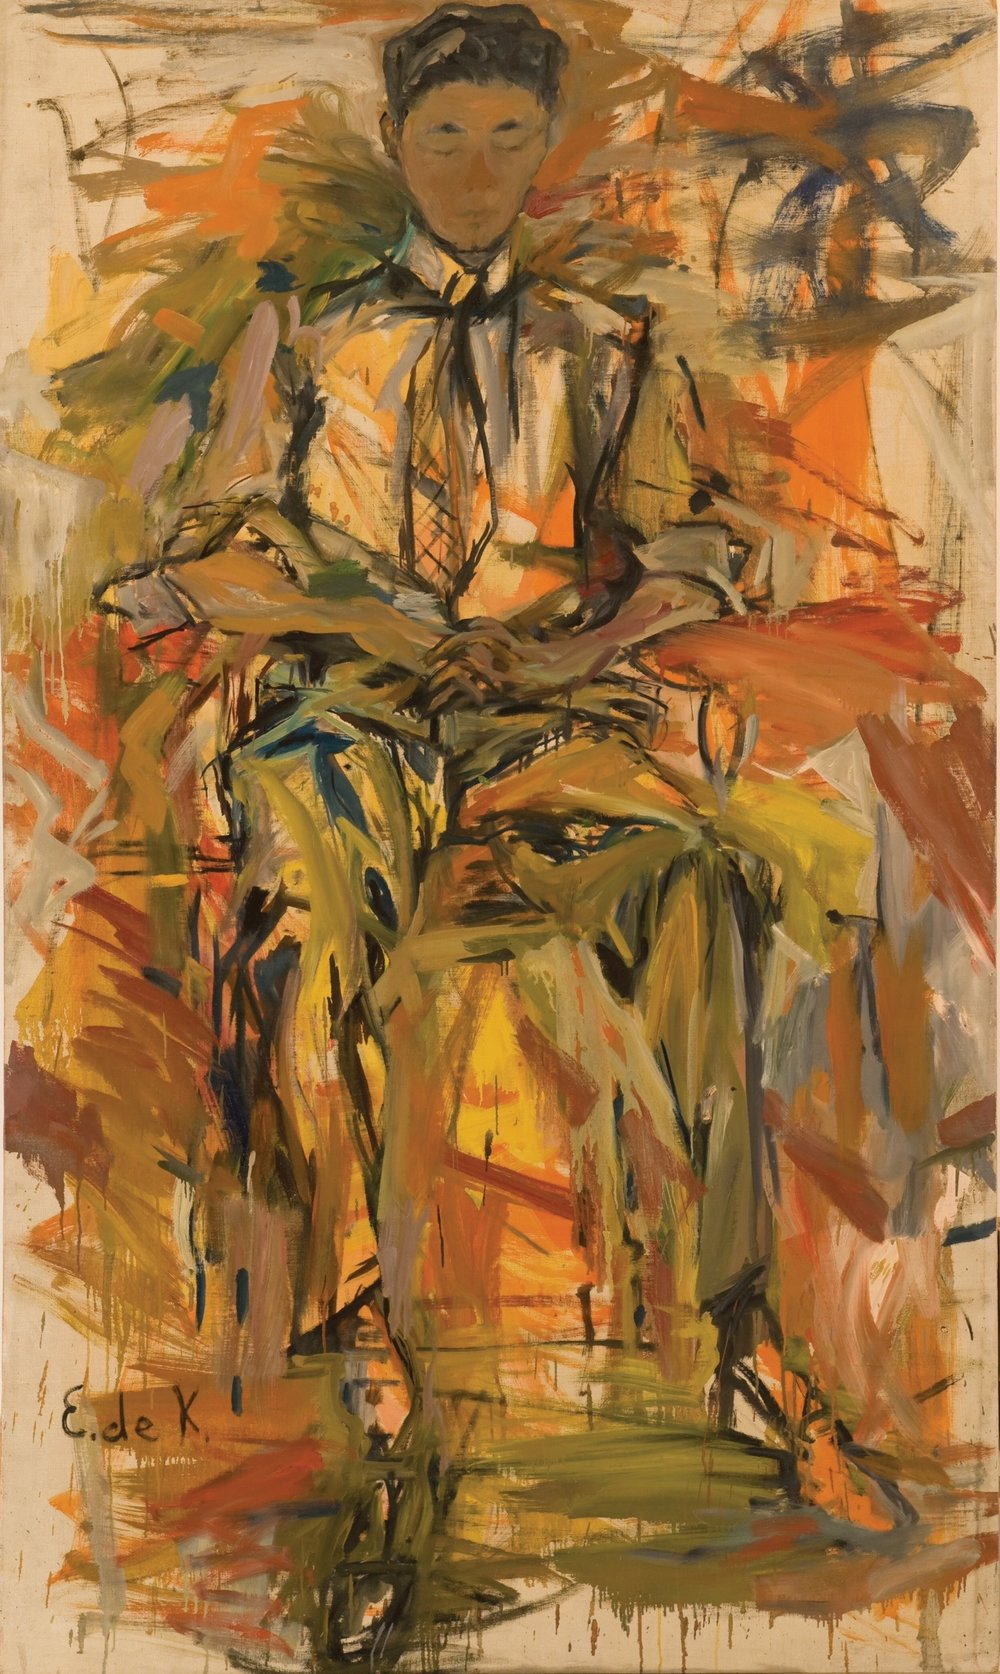 Conrad , 1954, oil on canvas, 80 x 46 inches, Private Collection, Delaware